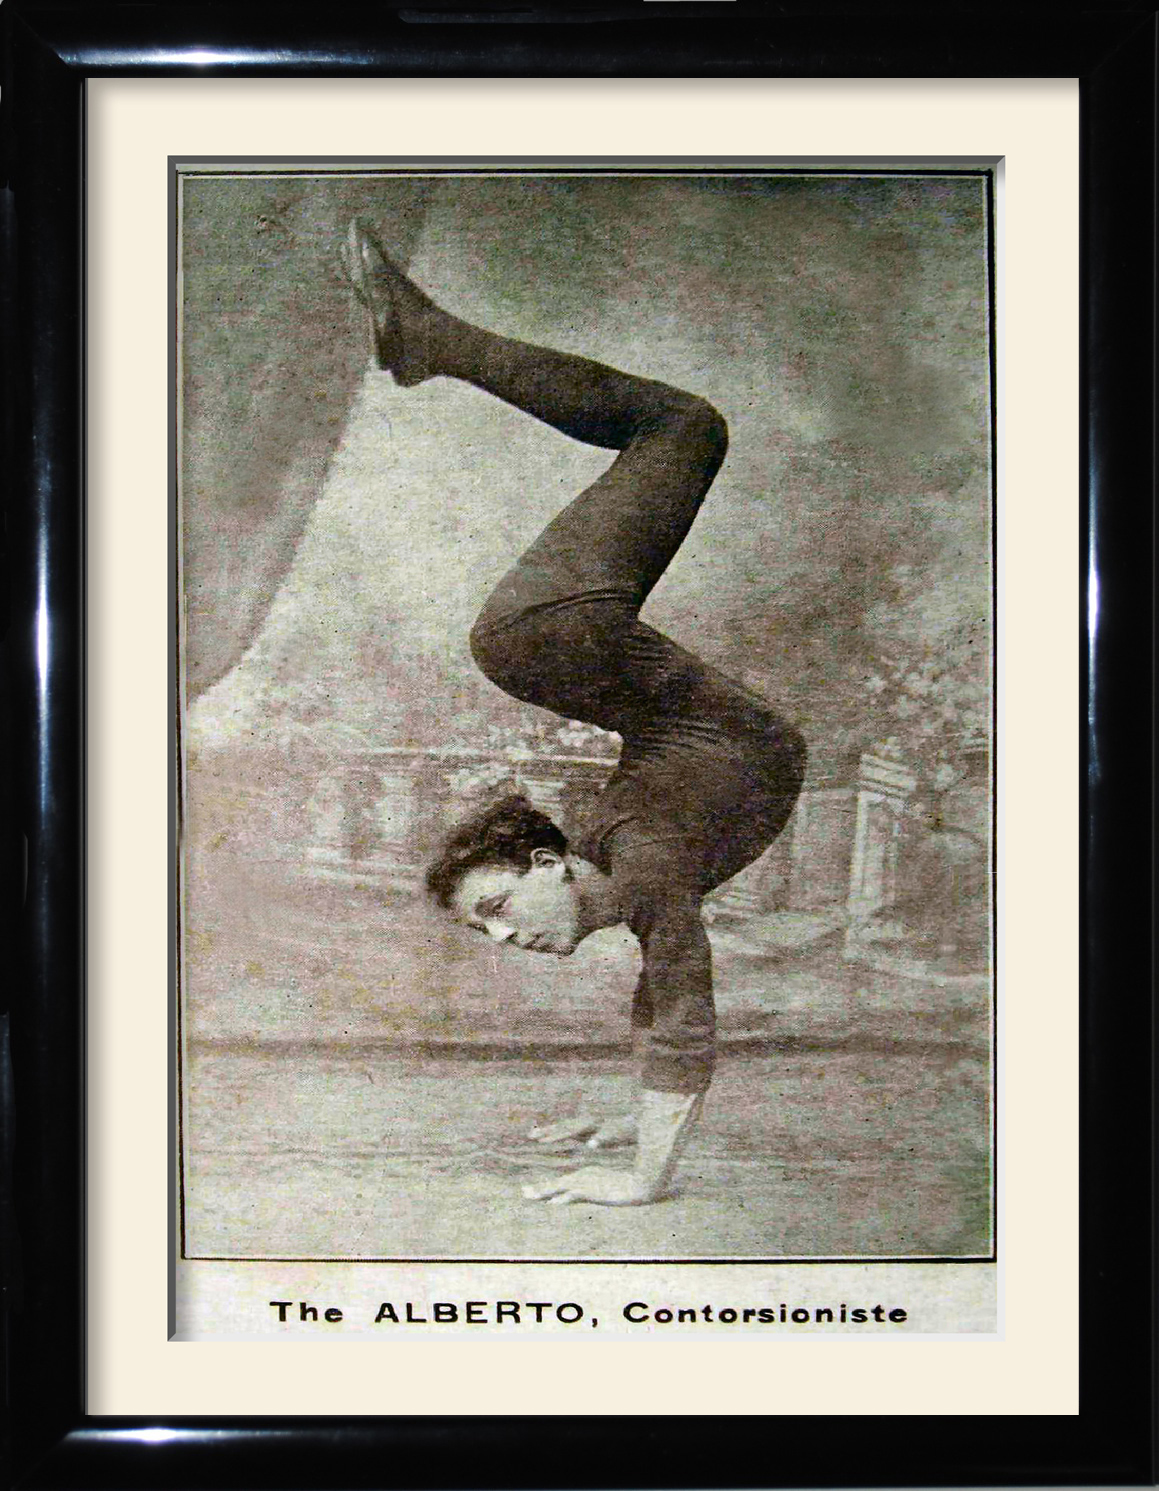 Alberto the great contortionist